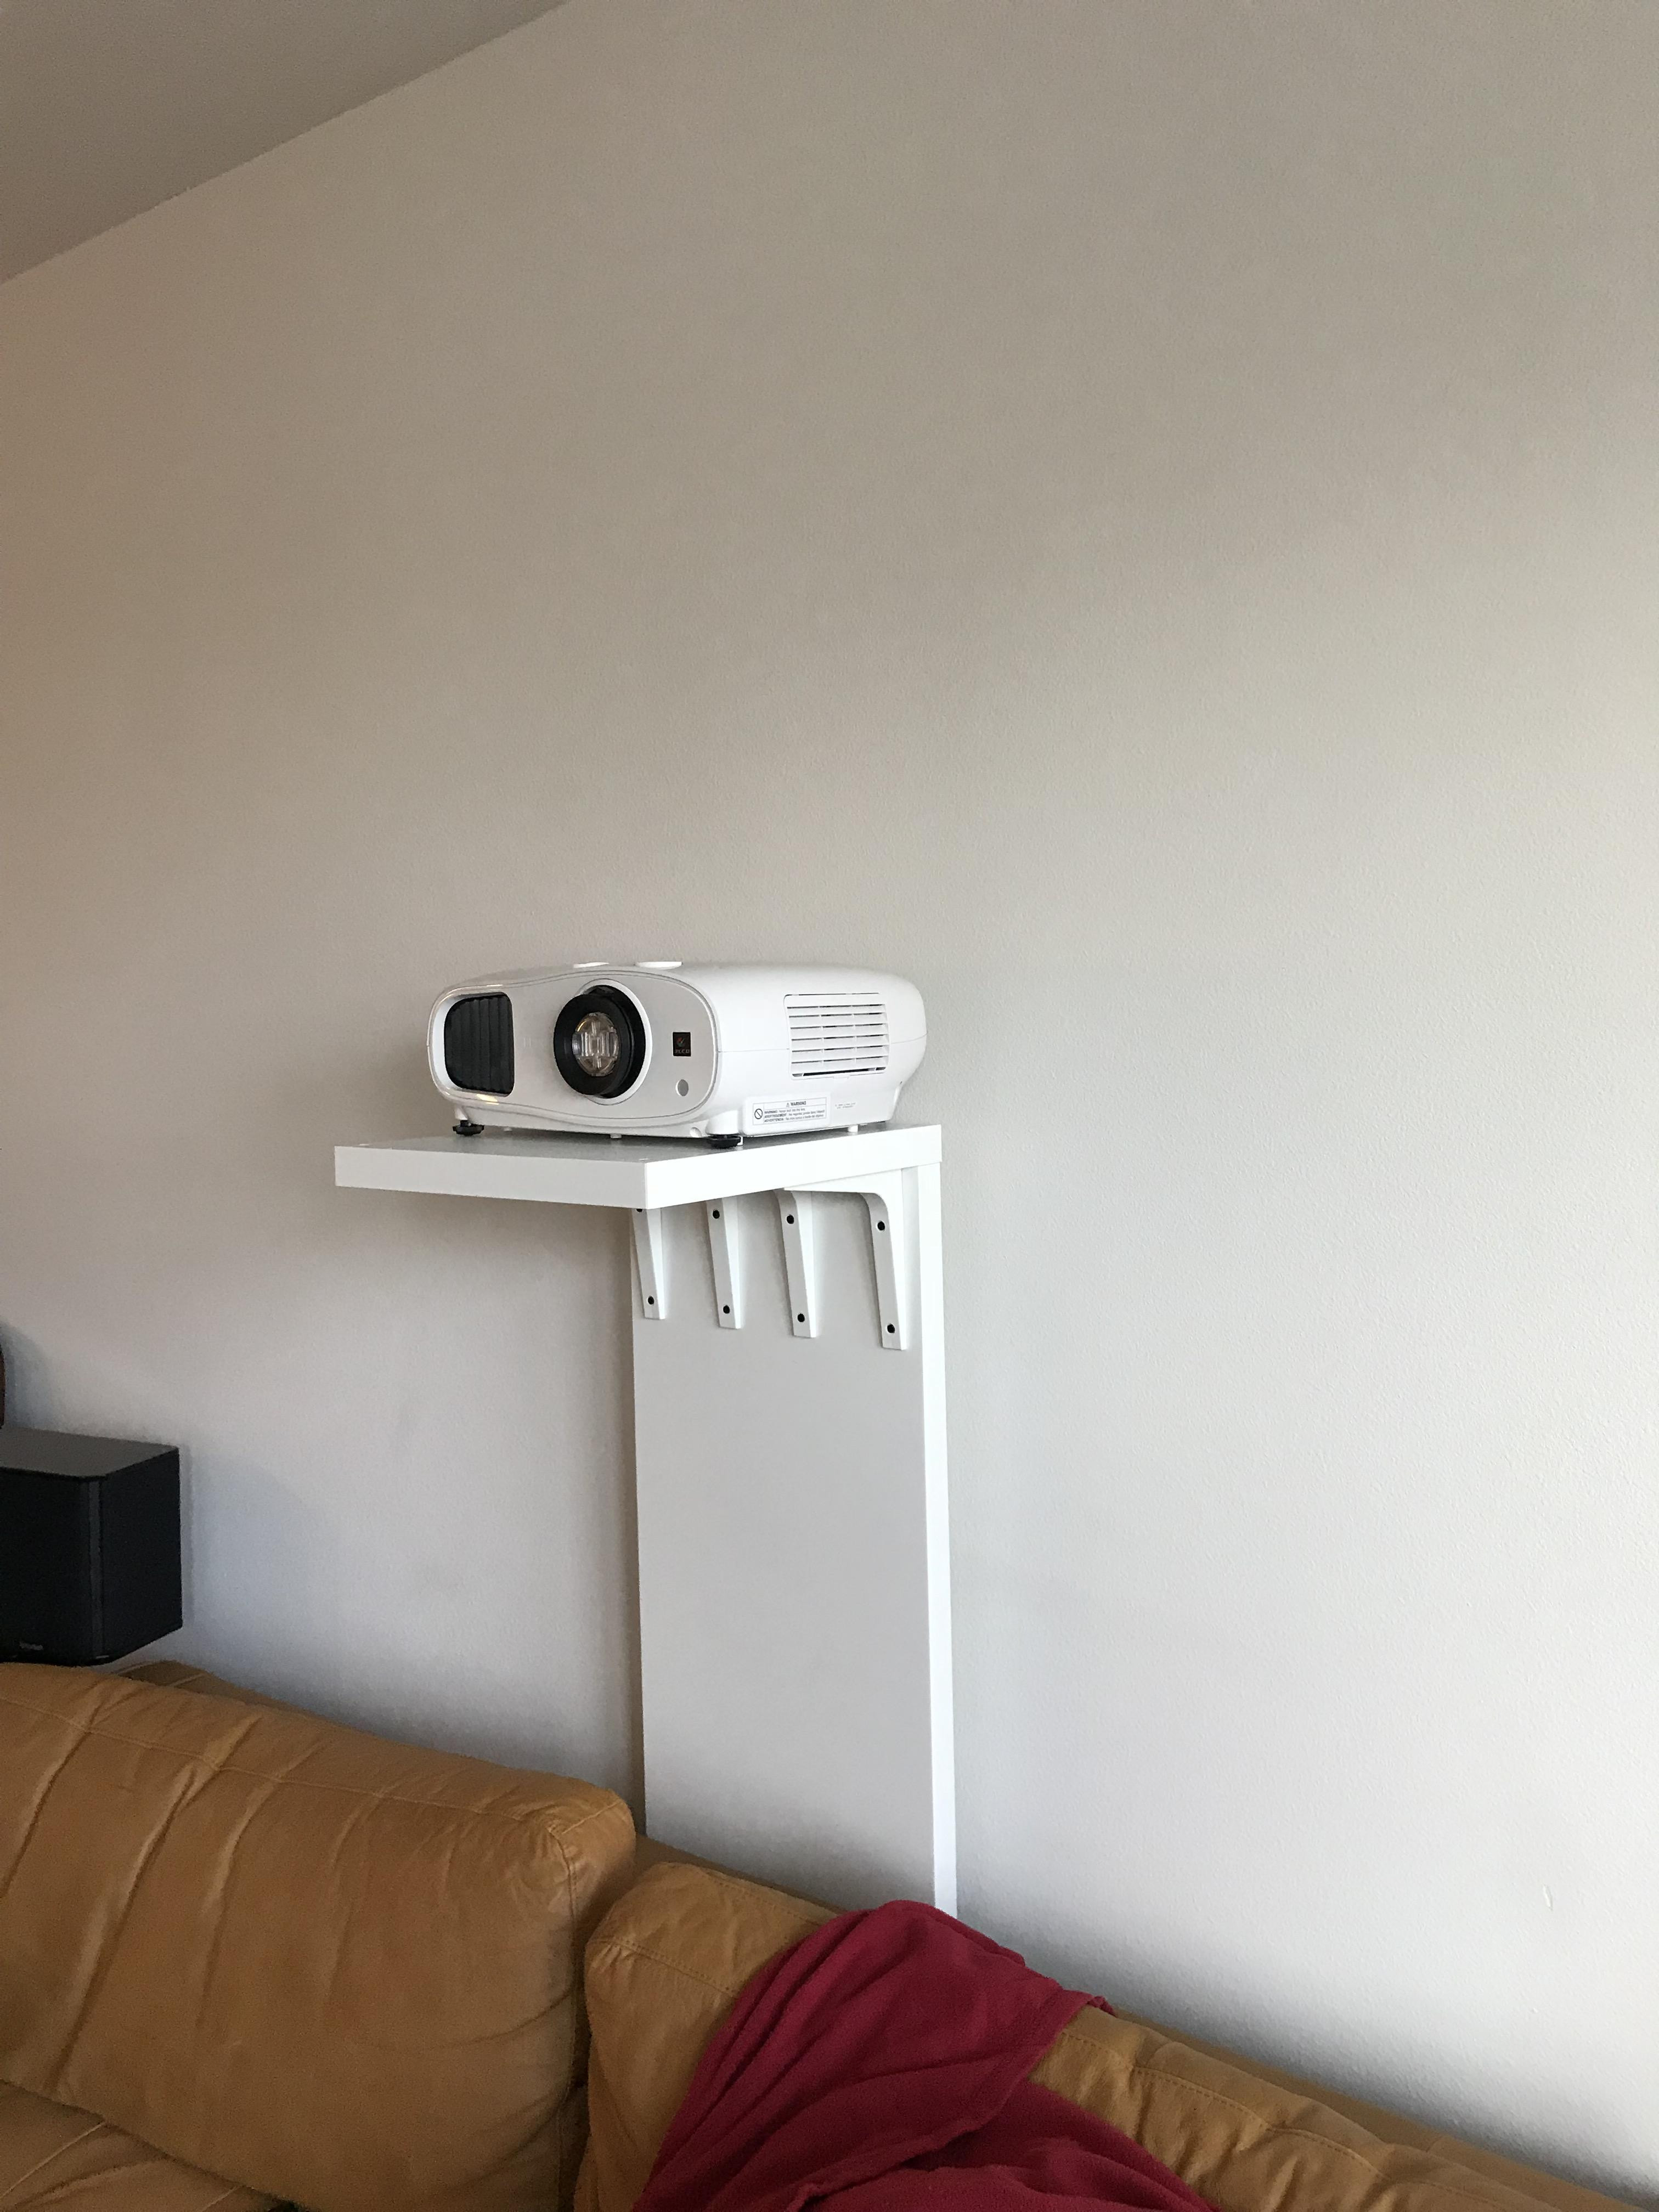 Best ideas about Projector Stand DIY . Save or Pin DiY Projector Stand IKEA projectors Now.